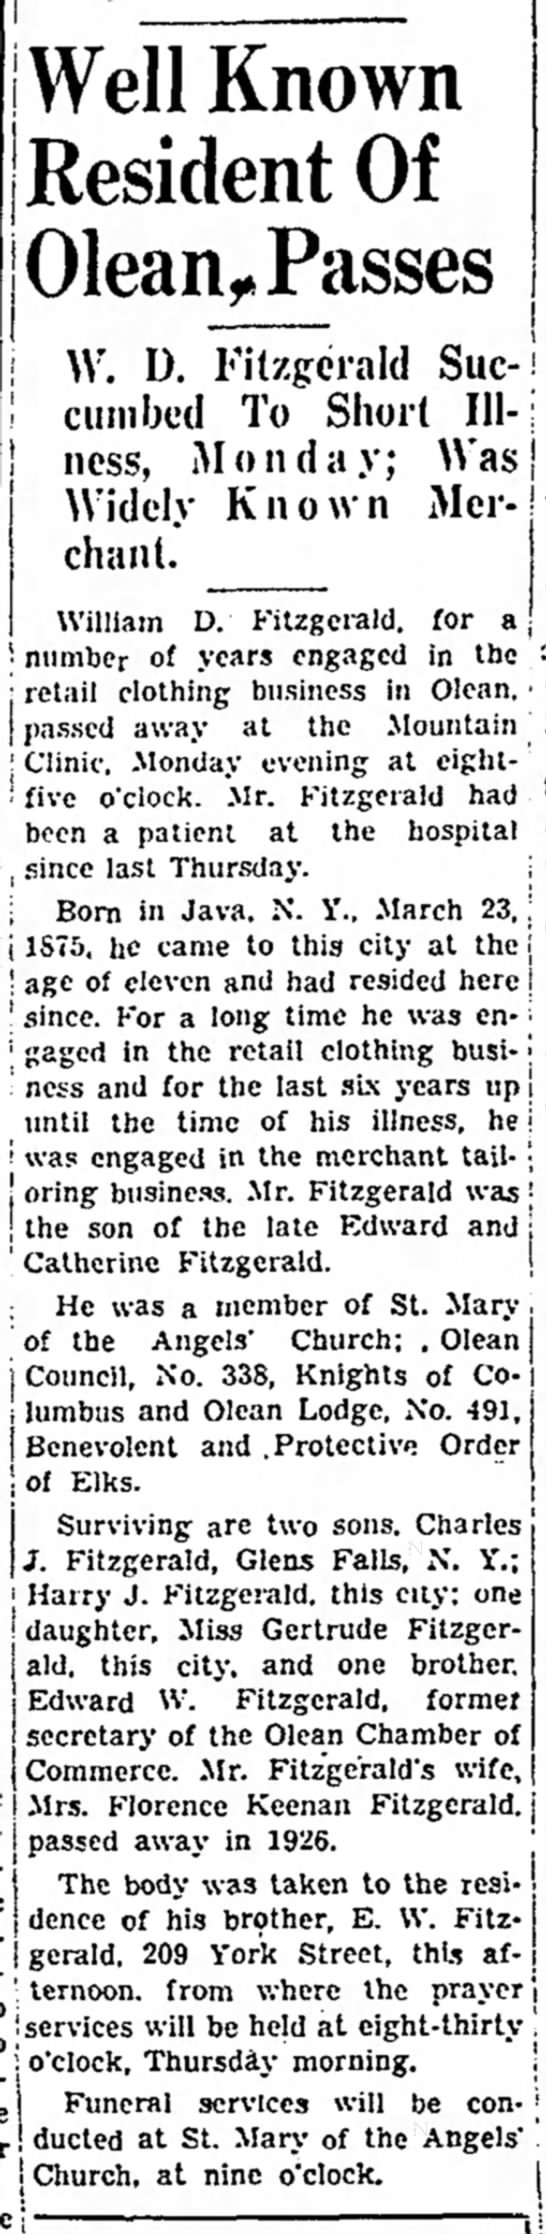 Times herald, Olean, New york, 10 March 1936, page 2, column 3. -